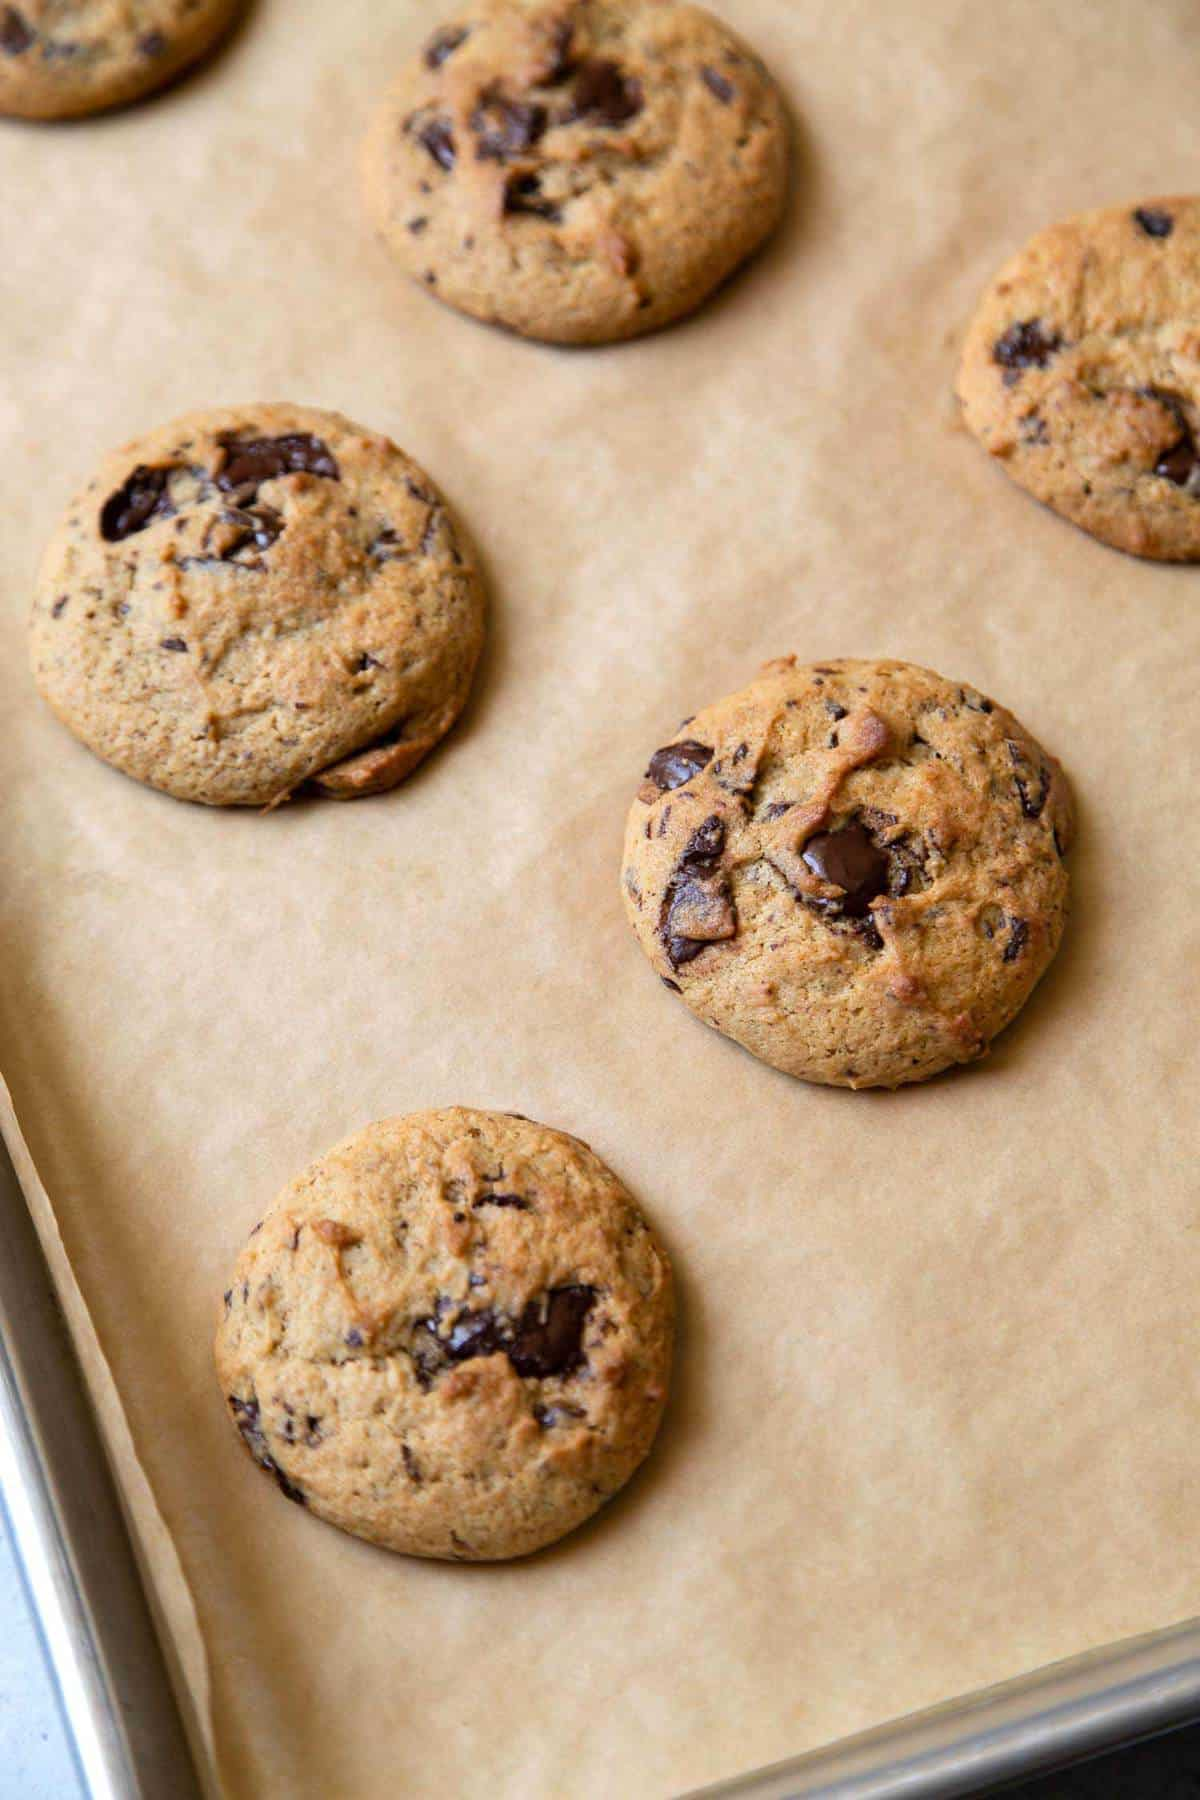 Banana chocolate chip cookies on parchment lined sheet tray.